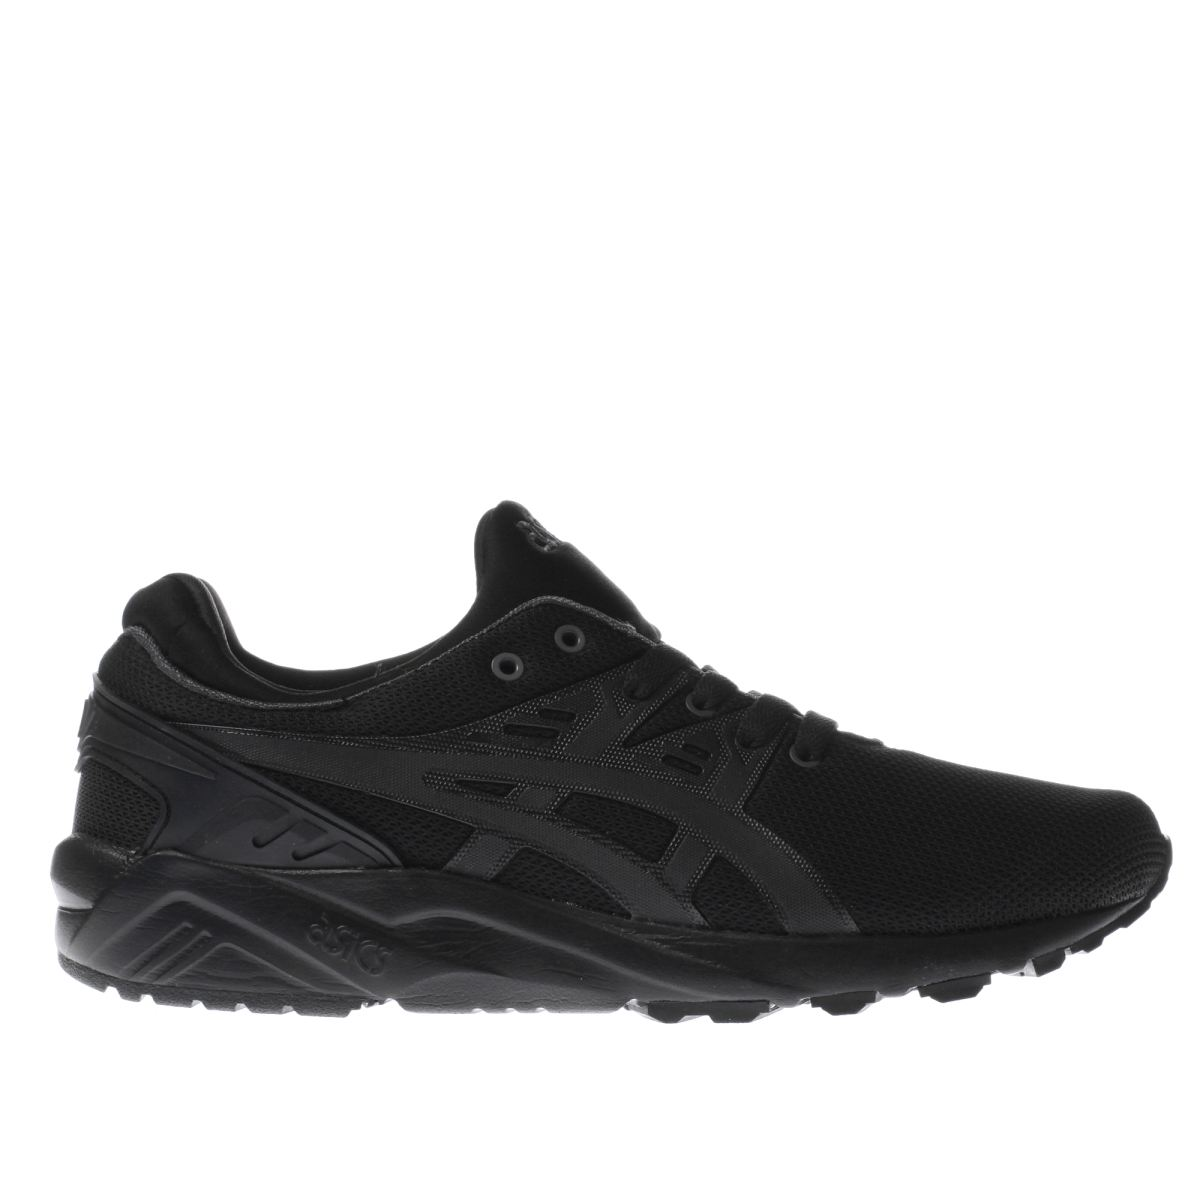 Asics Gel Kayano Evo Mens Trainers Black Image